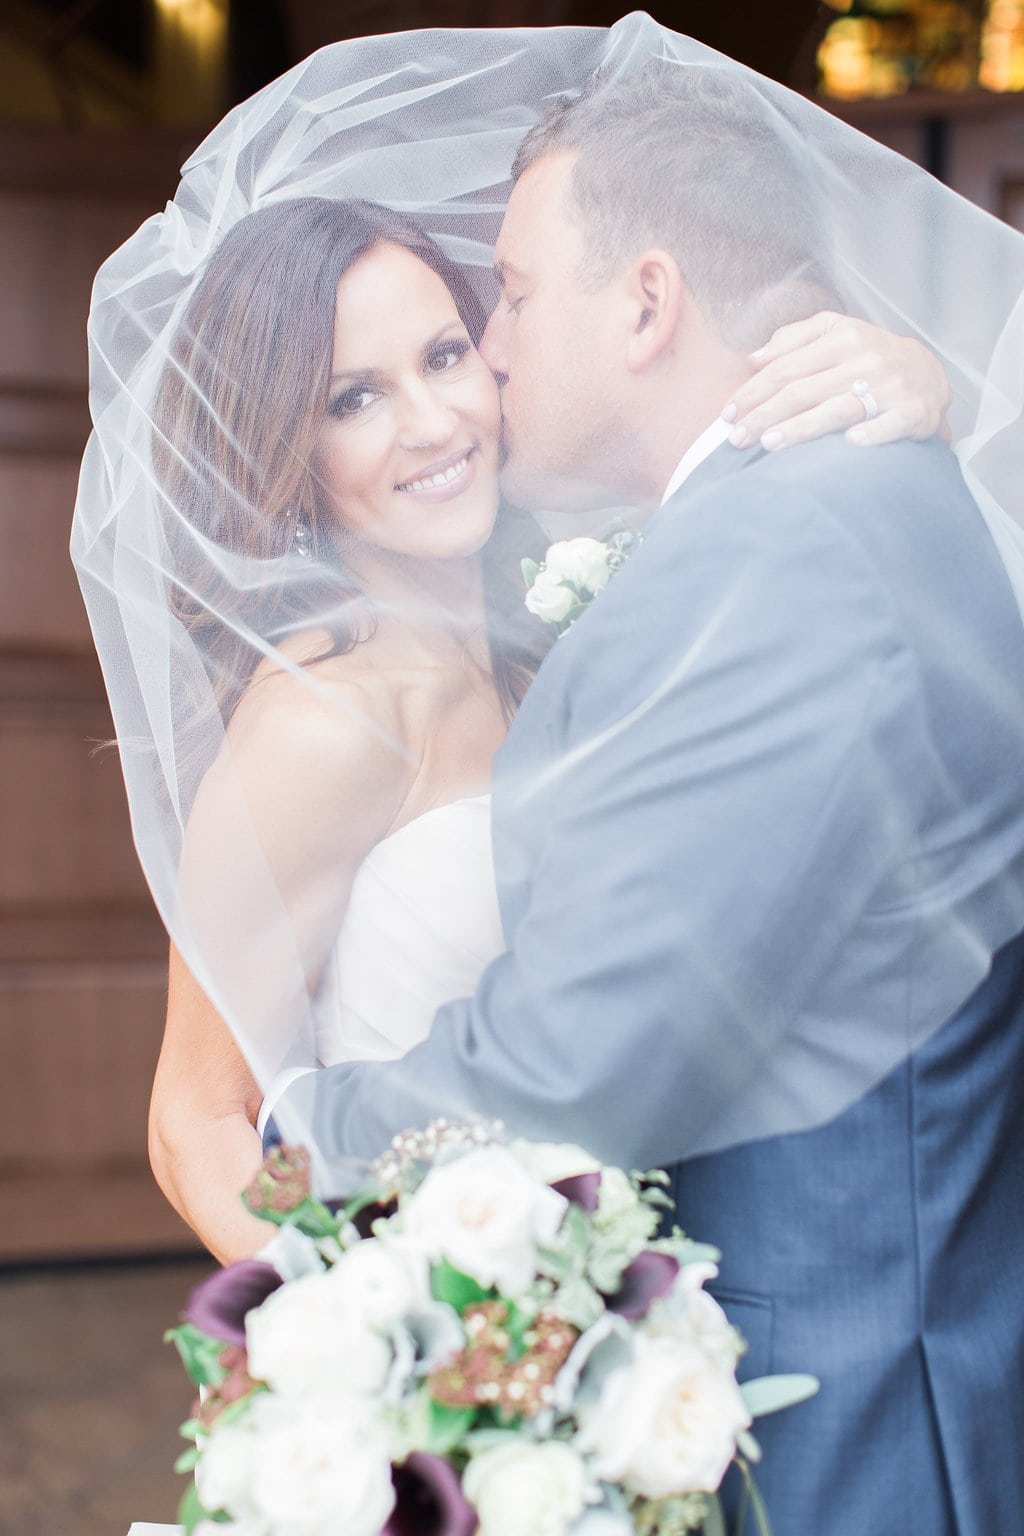 Photo of the groom kissing the bride's cheek under her veil outside the church